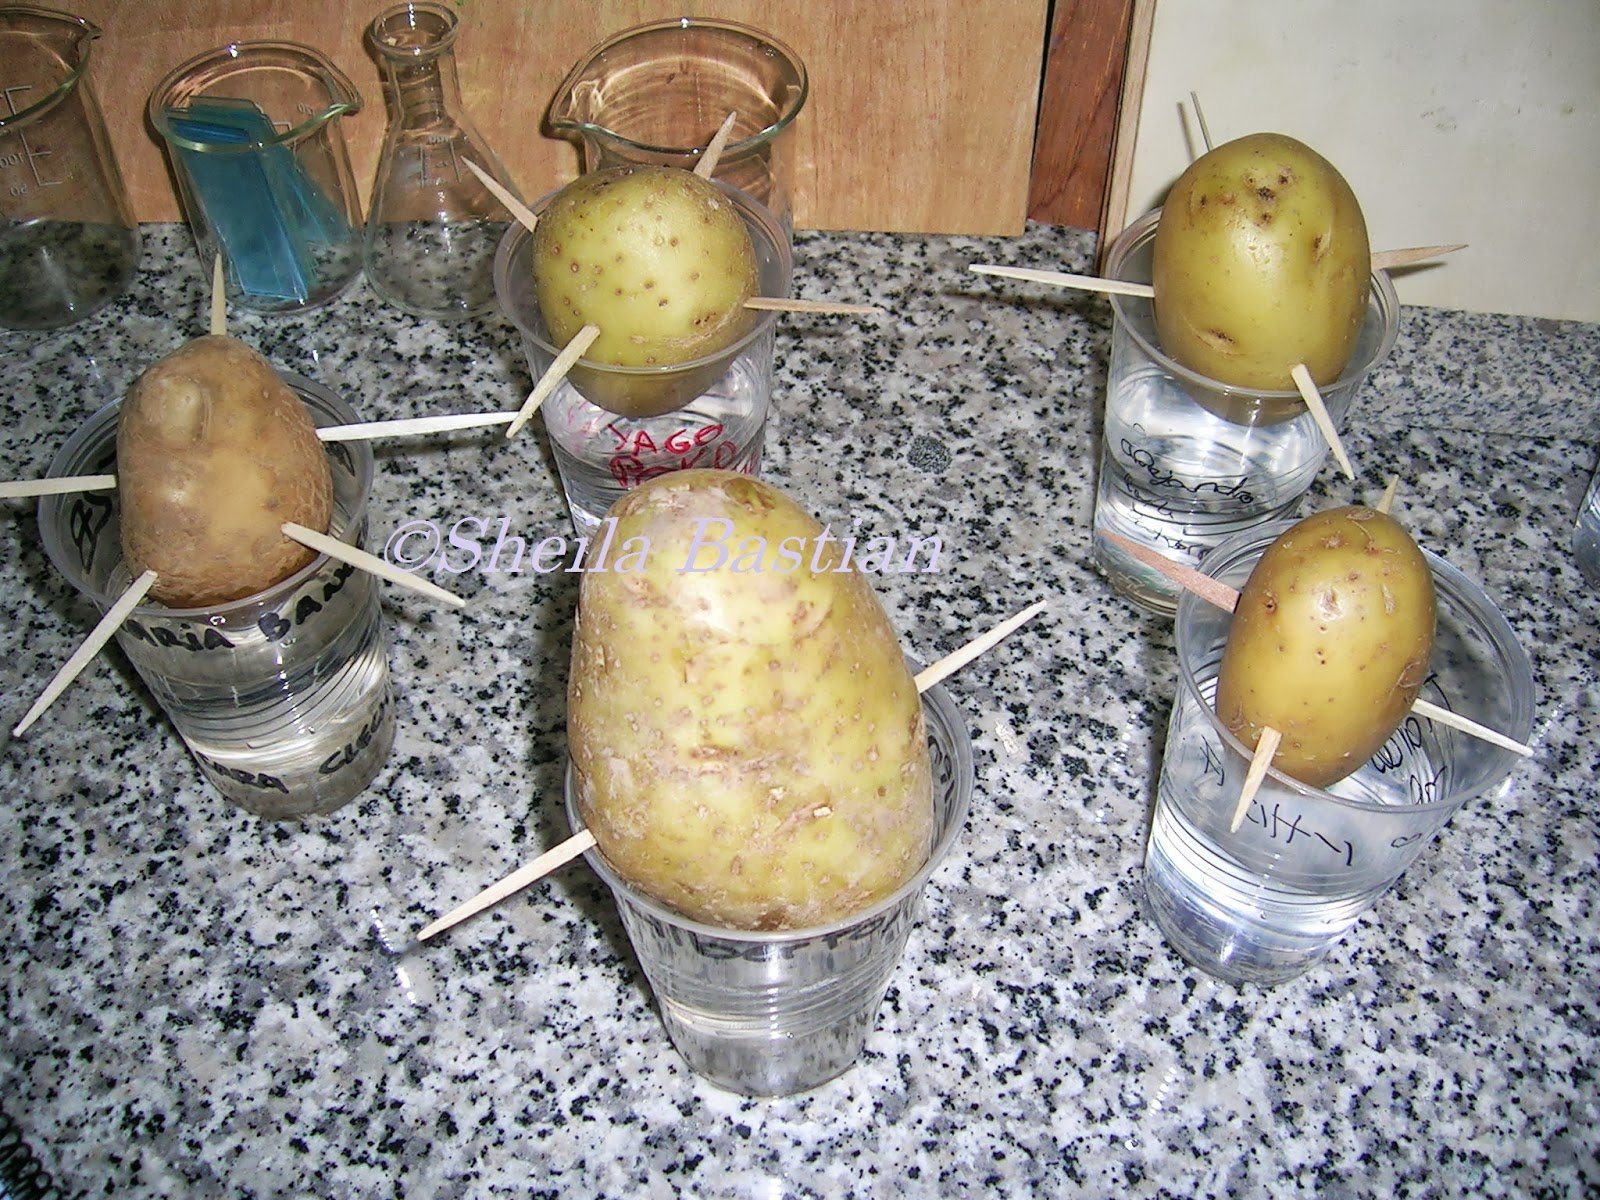 Potato asexual reproduction lab